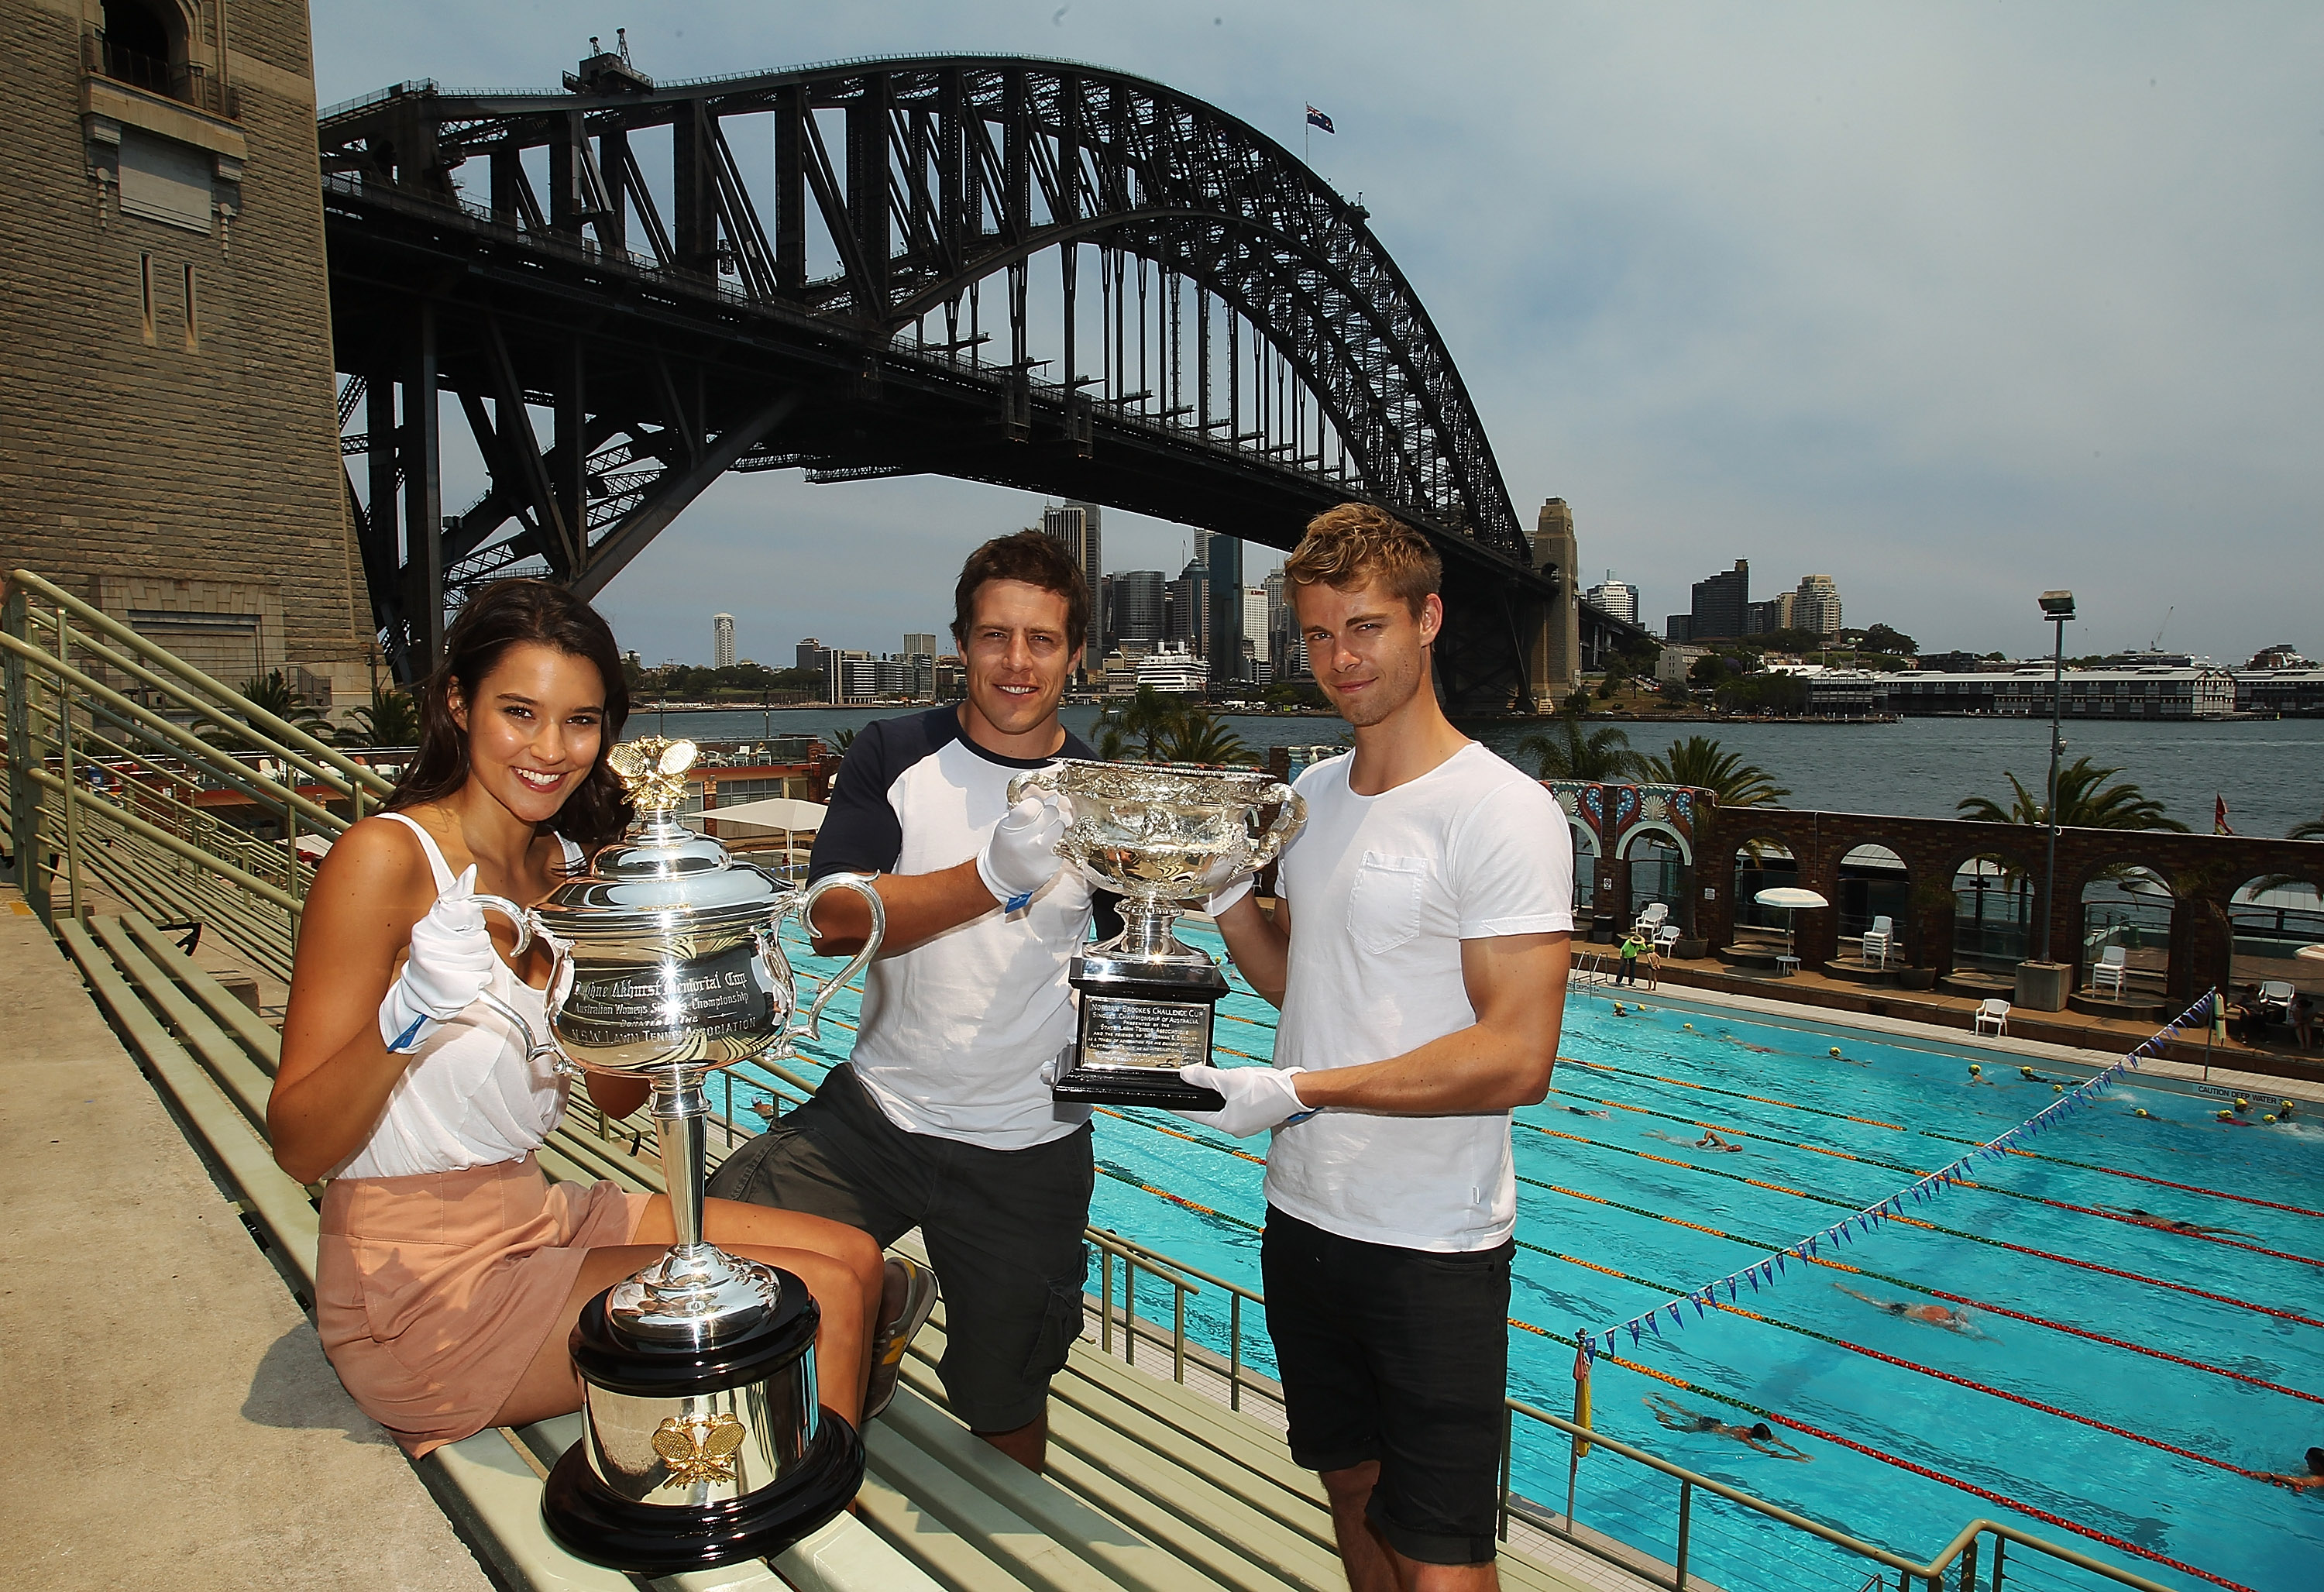 Rhiannon Fish, Steve Peacocke and Luke Mitchell